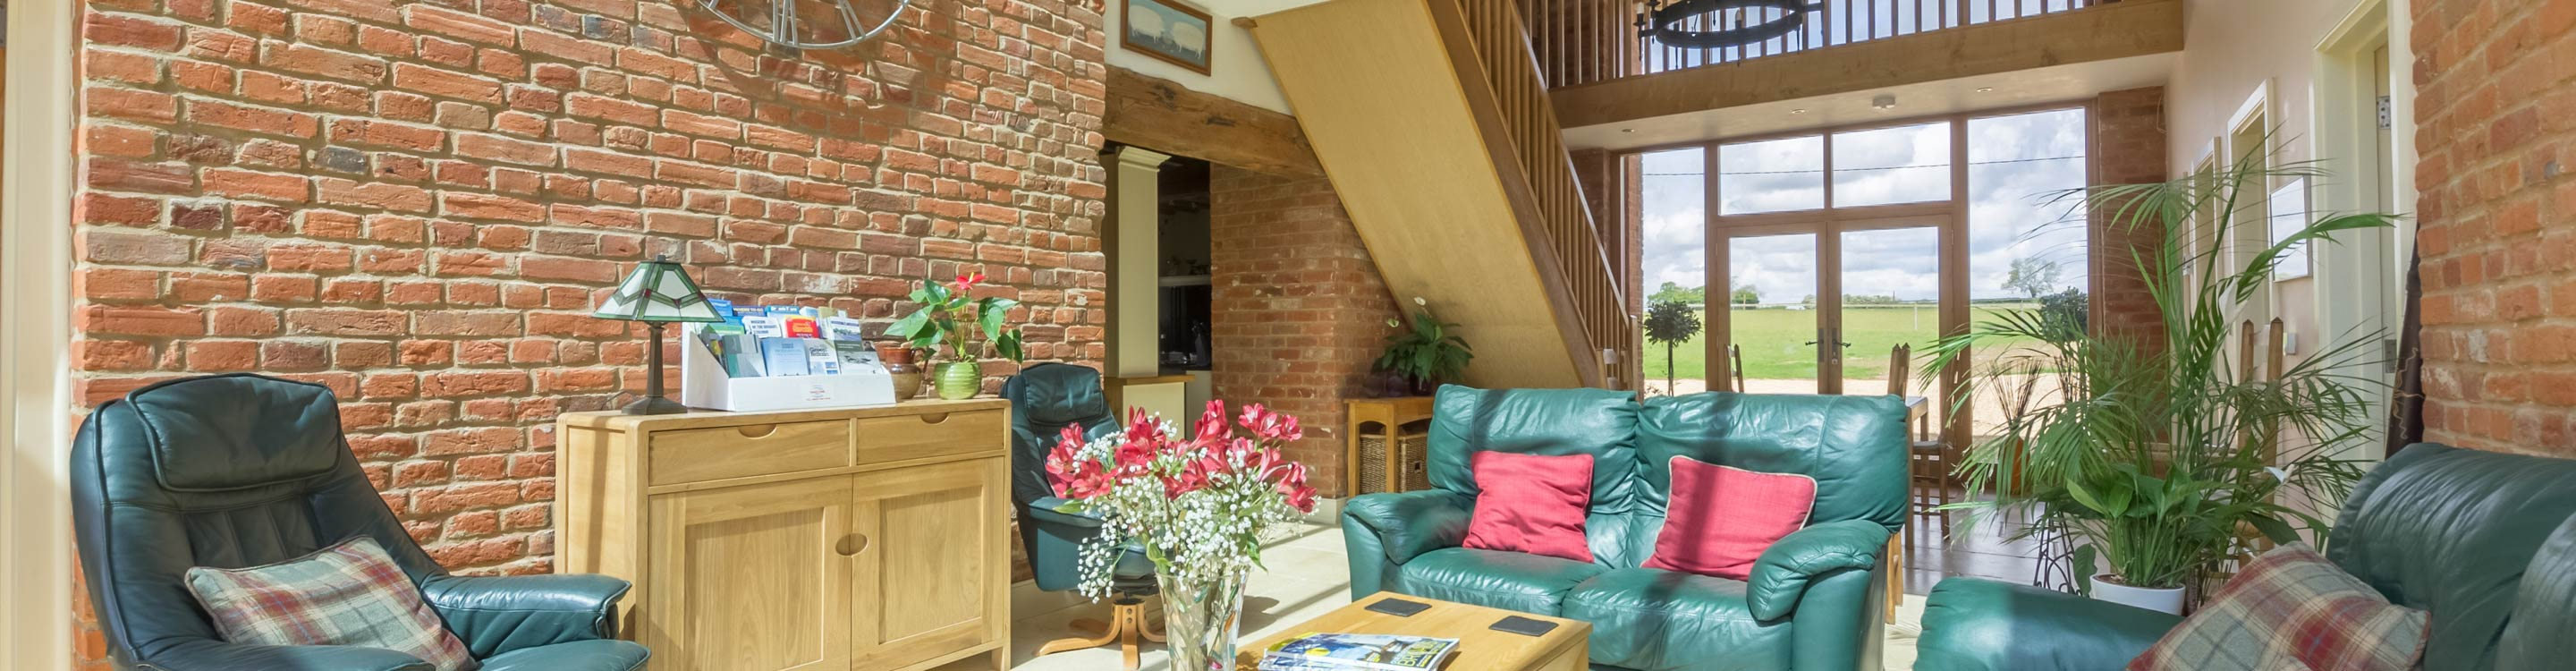 Luxury Bed & Breakfast Accommodation in Norfolk